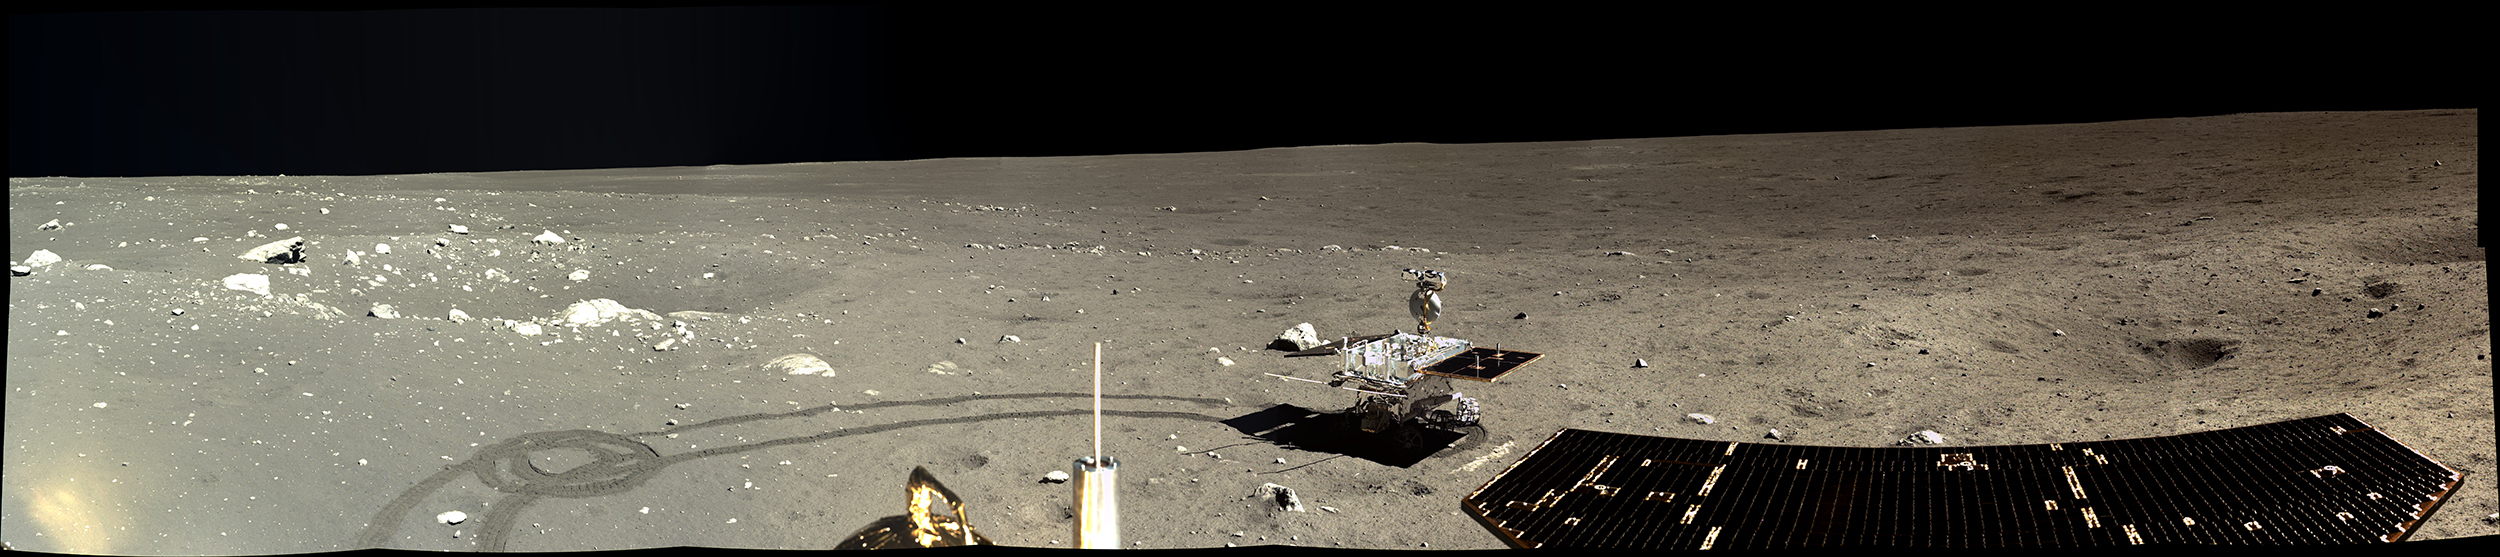 Part of a full 360-degree panorama taken by the Chang'e 3 lander on Dec. 17, 2013, three days after landing.